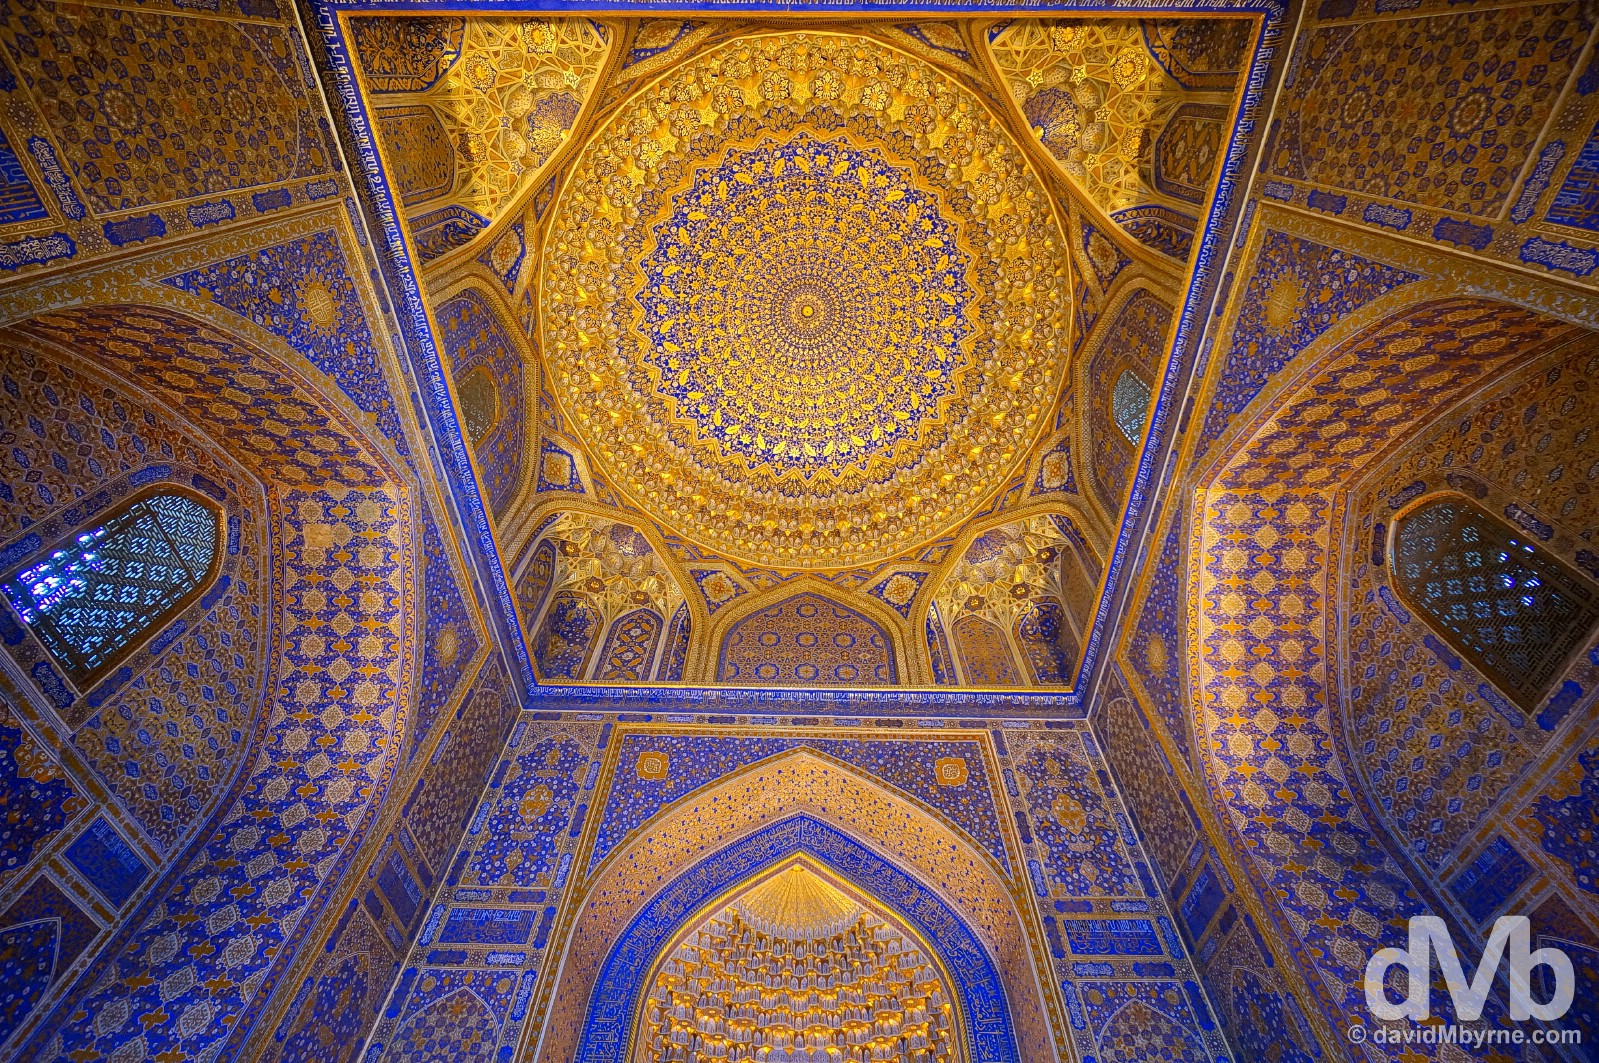 The stunning golf leaf-heavy ceiling of the mosque in the Tilla-Kari Medressa of the Registan in Samarkand, Uzbekistan. March 8, 2015.